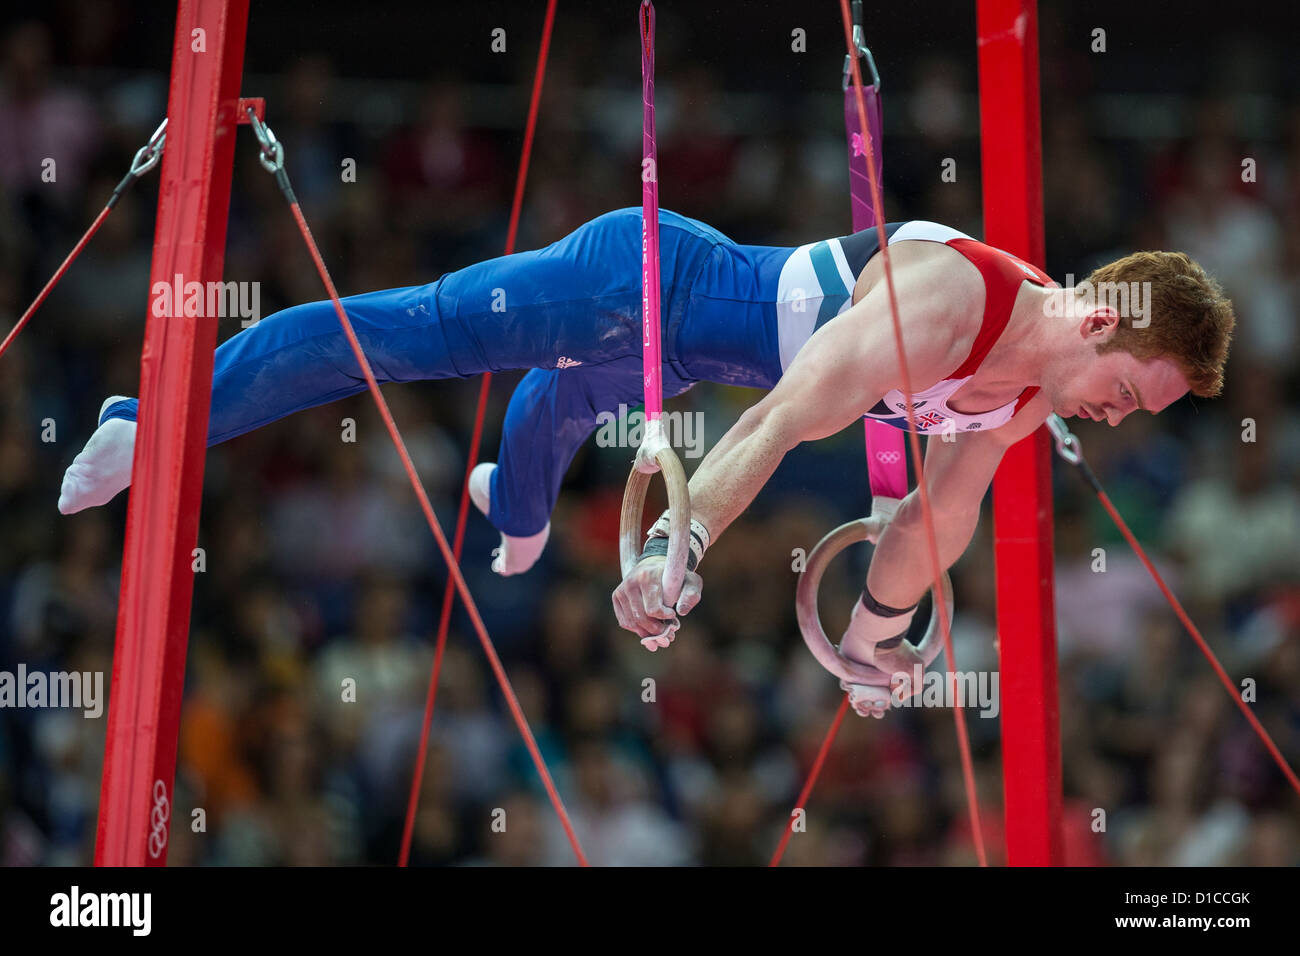 Daniel Purvis (GBR) competing on the rings during the Men's Individual All-Around at the 2012 Olympic Summer - Stock Image